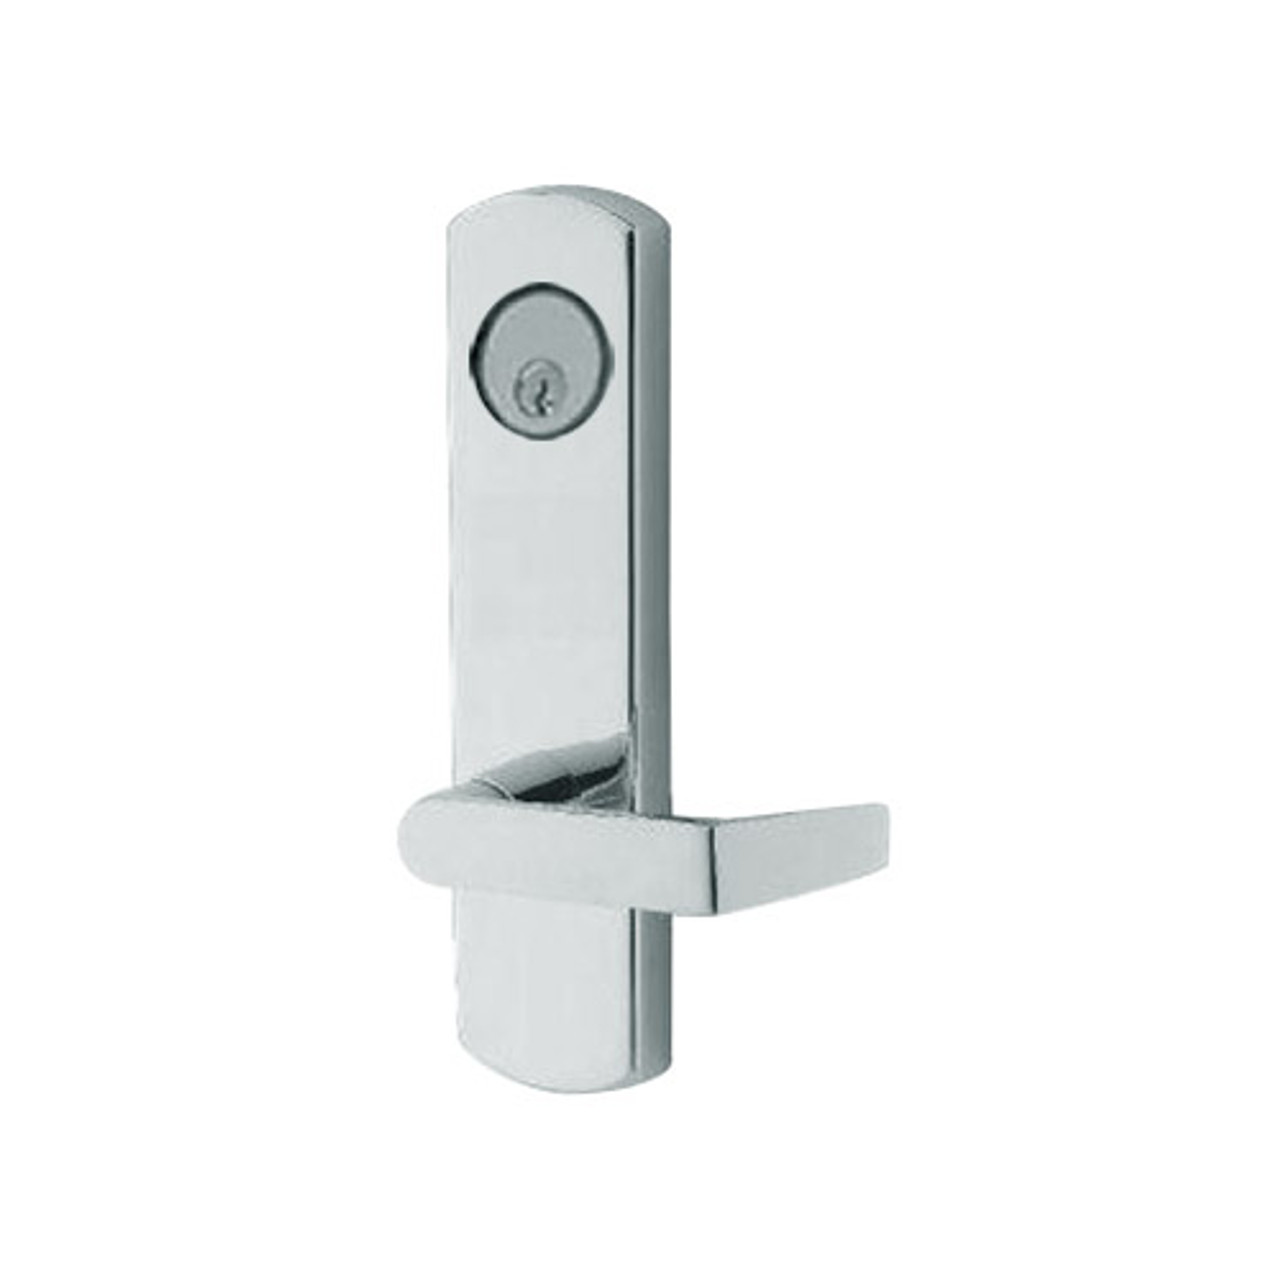 3080-03-0-96-US32 Adams Rite Standard Entry Trim with Square Lever in Bright Stainless Finish